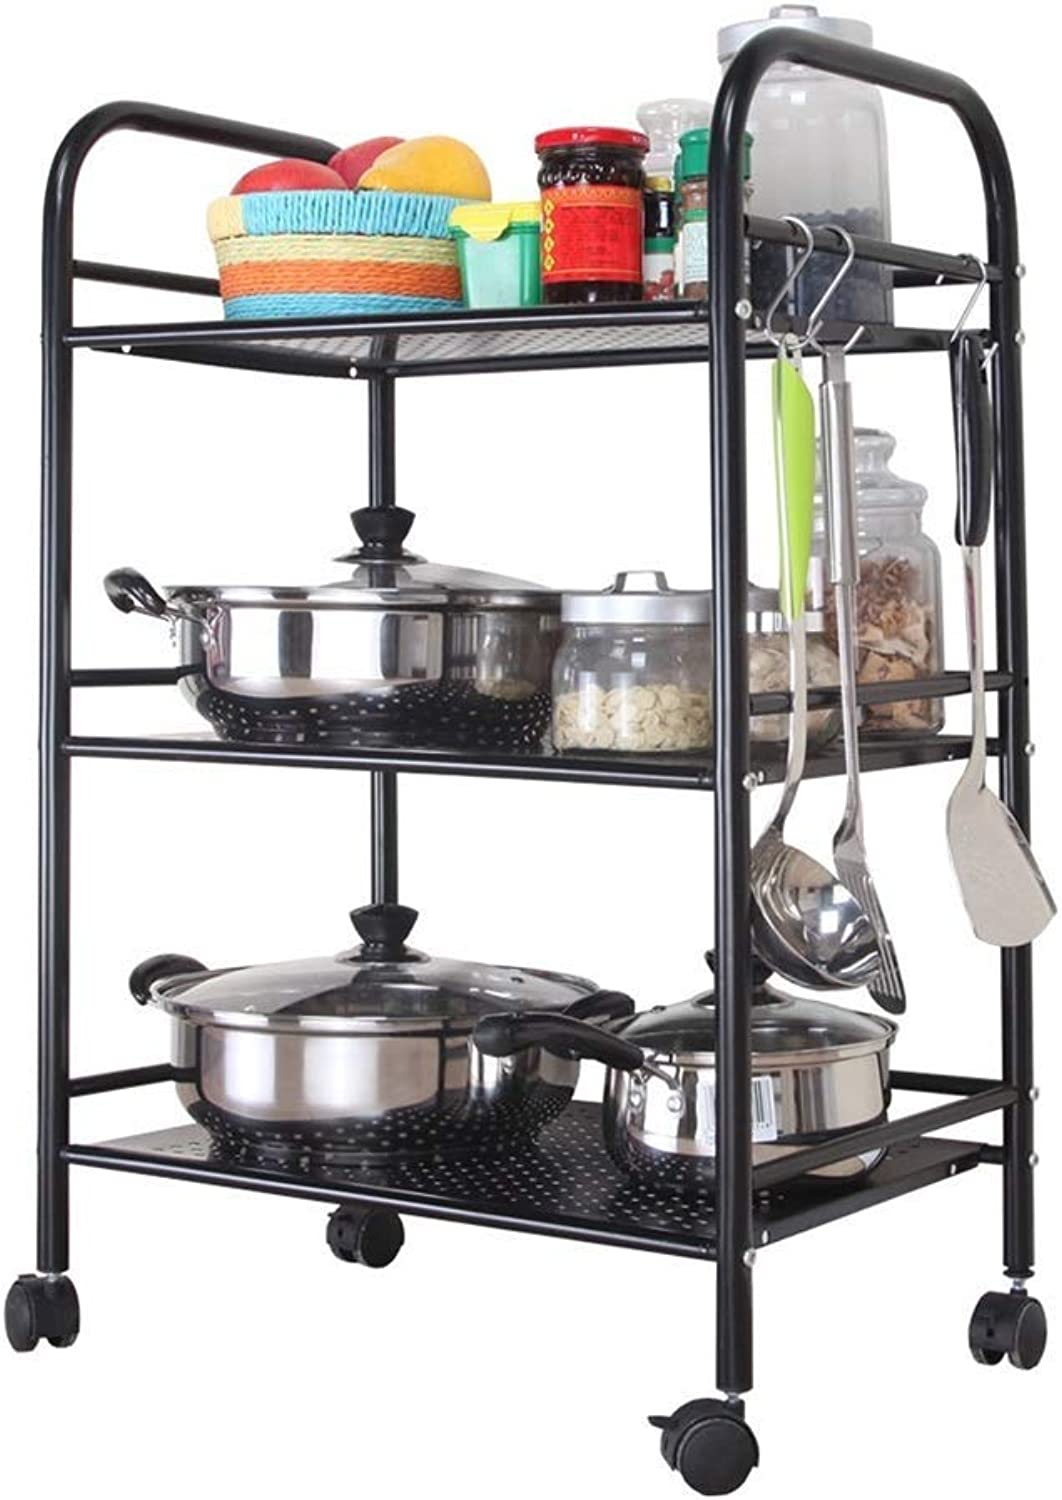 RMJAI Storage Racks 3—Shelf Shelving UnitKitchen Shelf Microwave Shelf Suitable for Kitchen, Home, Office (Size   S)